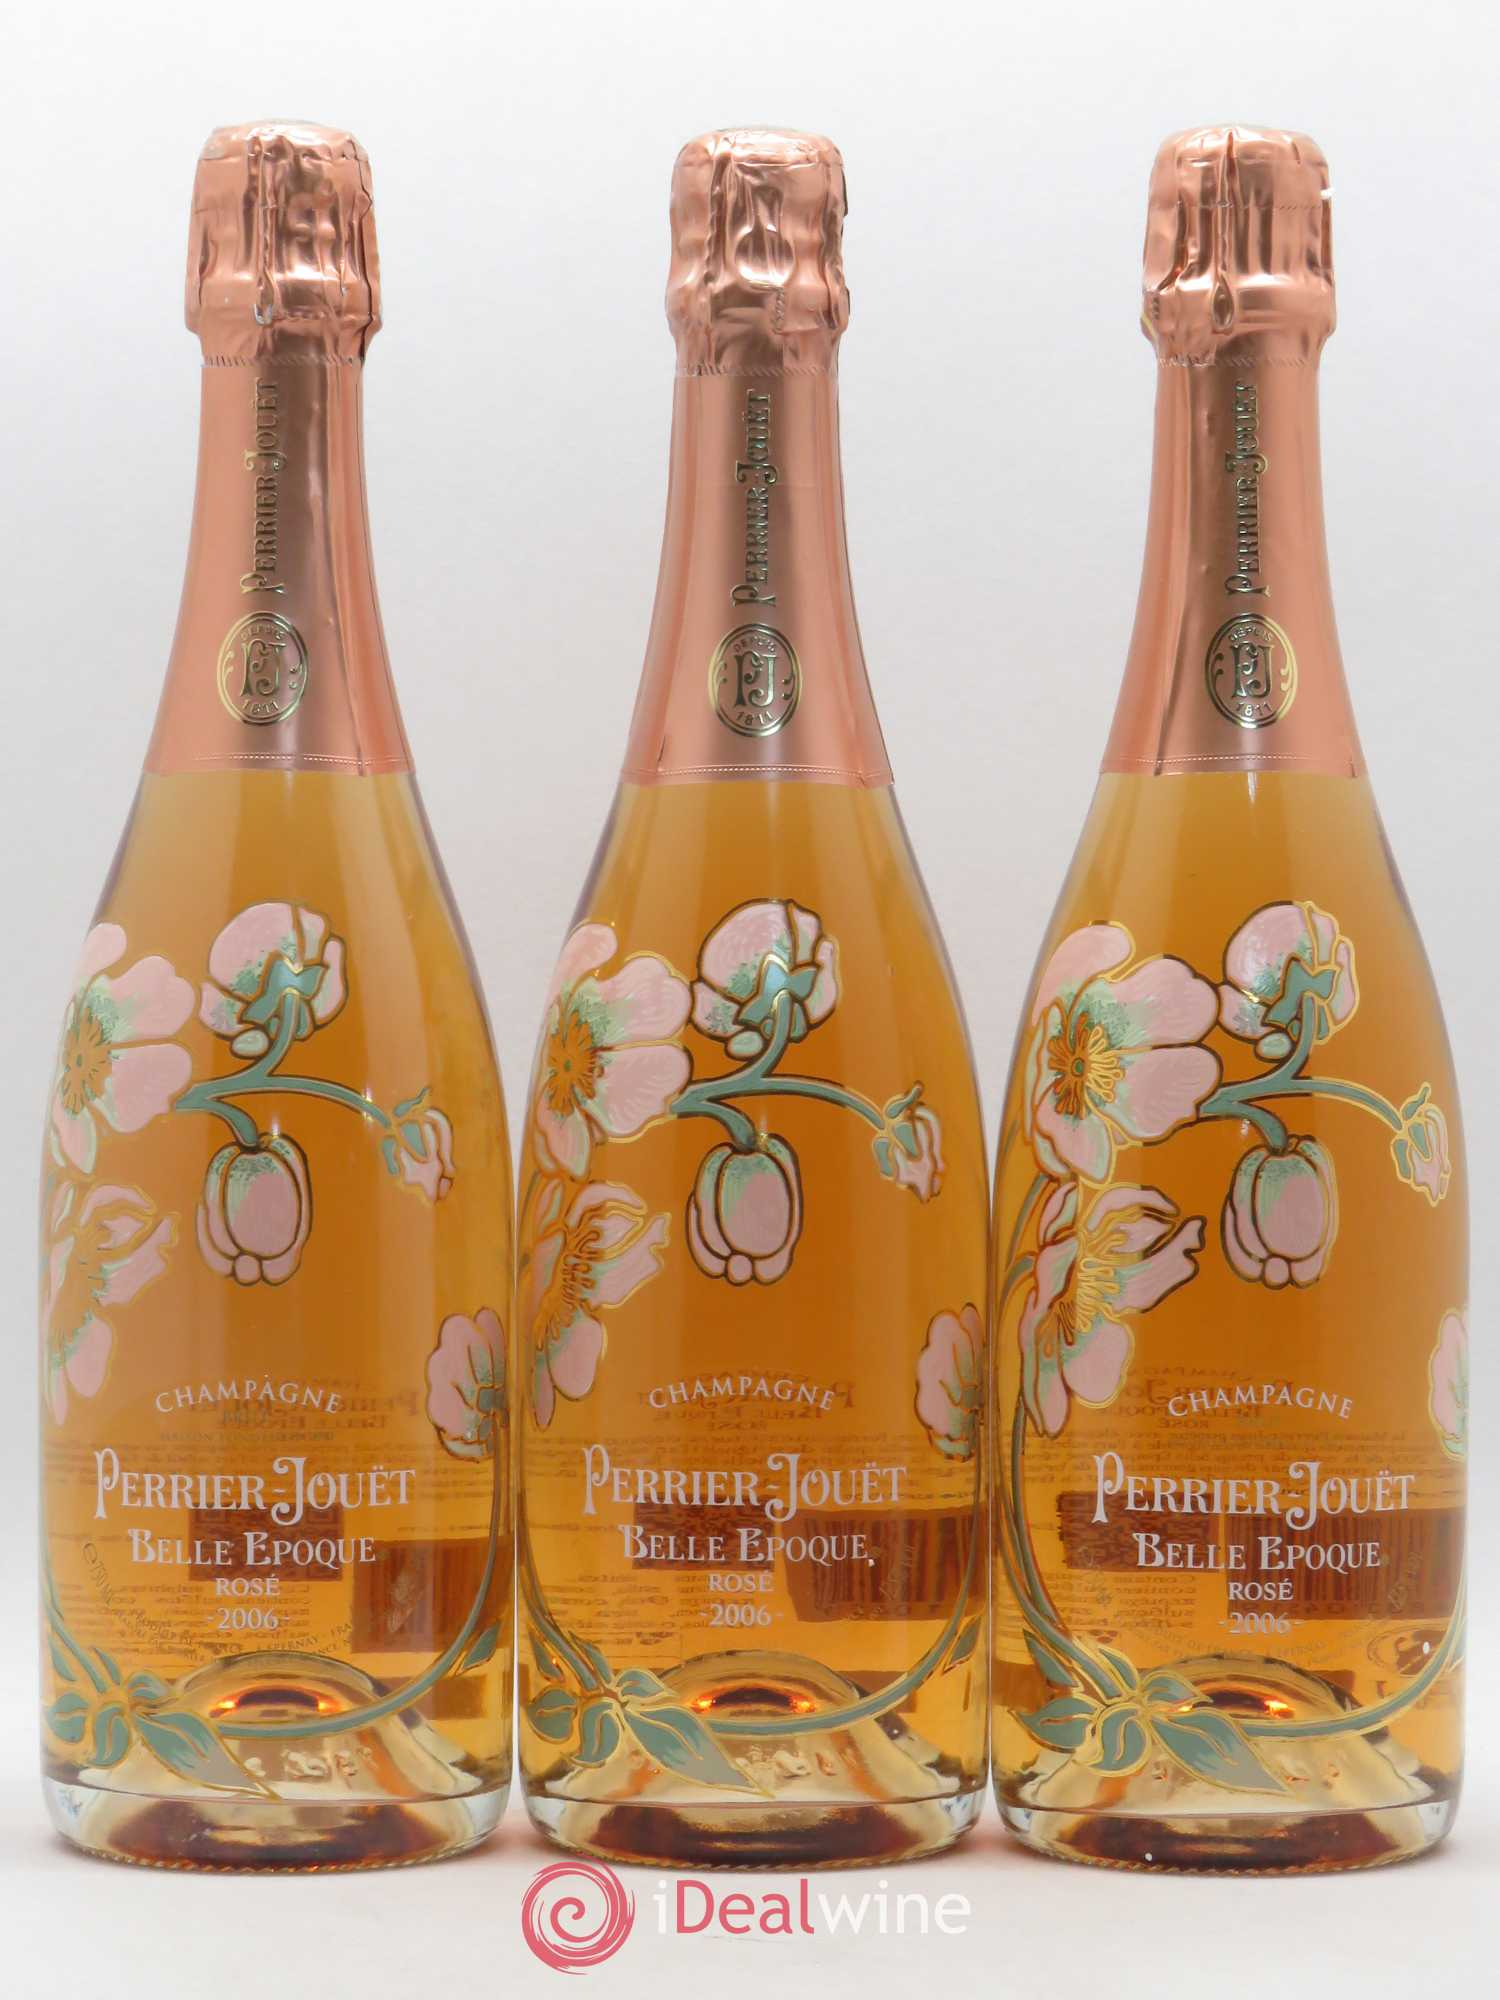 Cuvée Belle Epoque Perrier Jouët  2006 - Lot of 3 Bottles